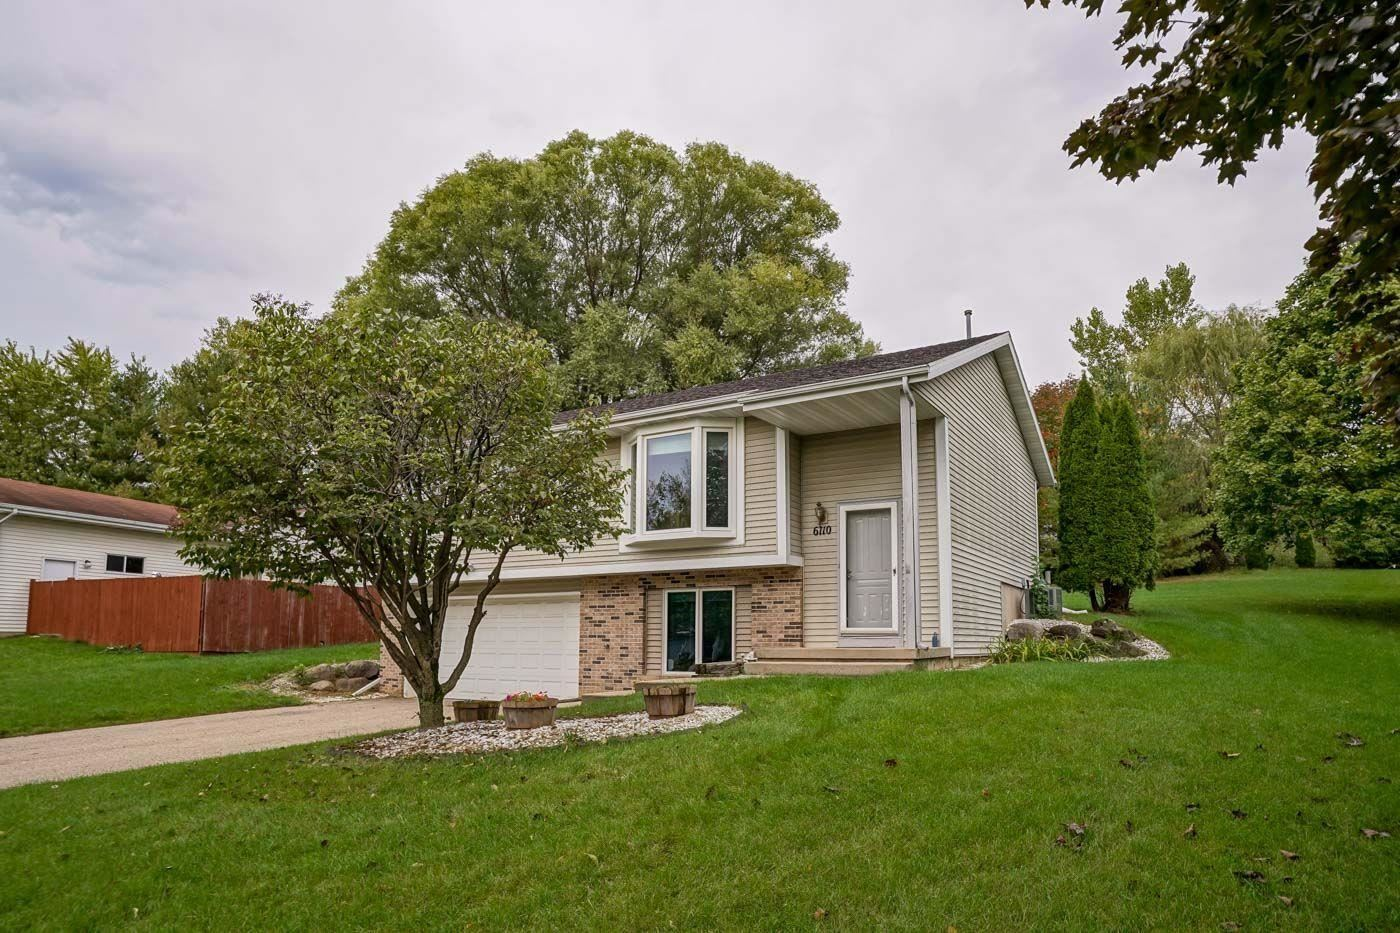 6110 Waterford Rd, Madison, WI 53719 - #: 1921918